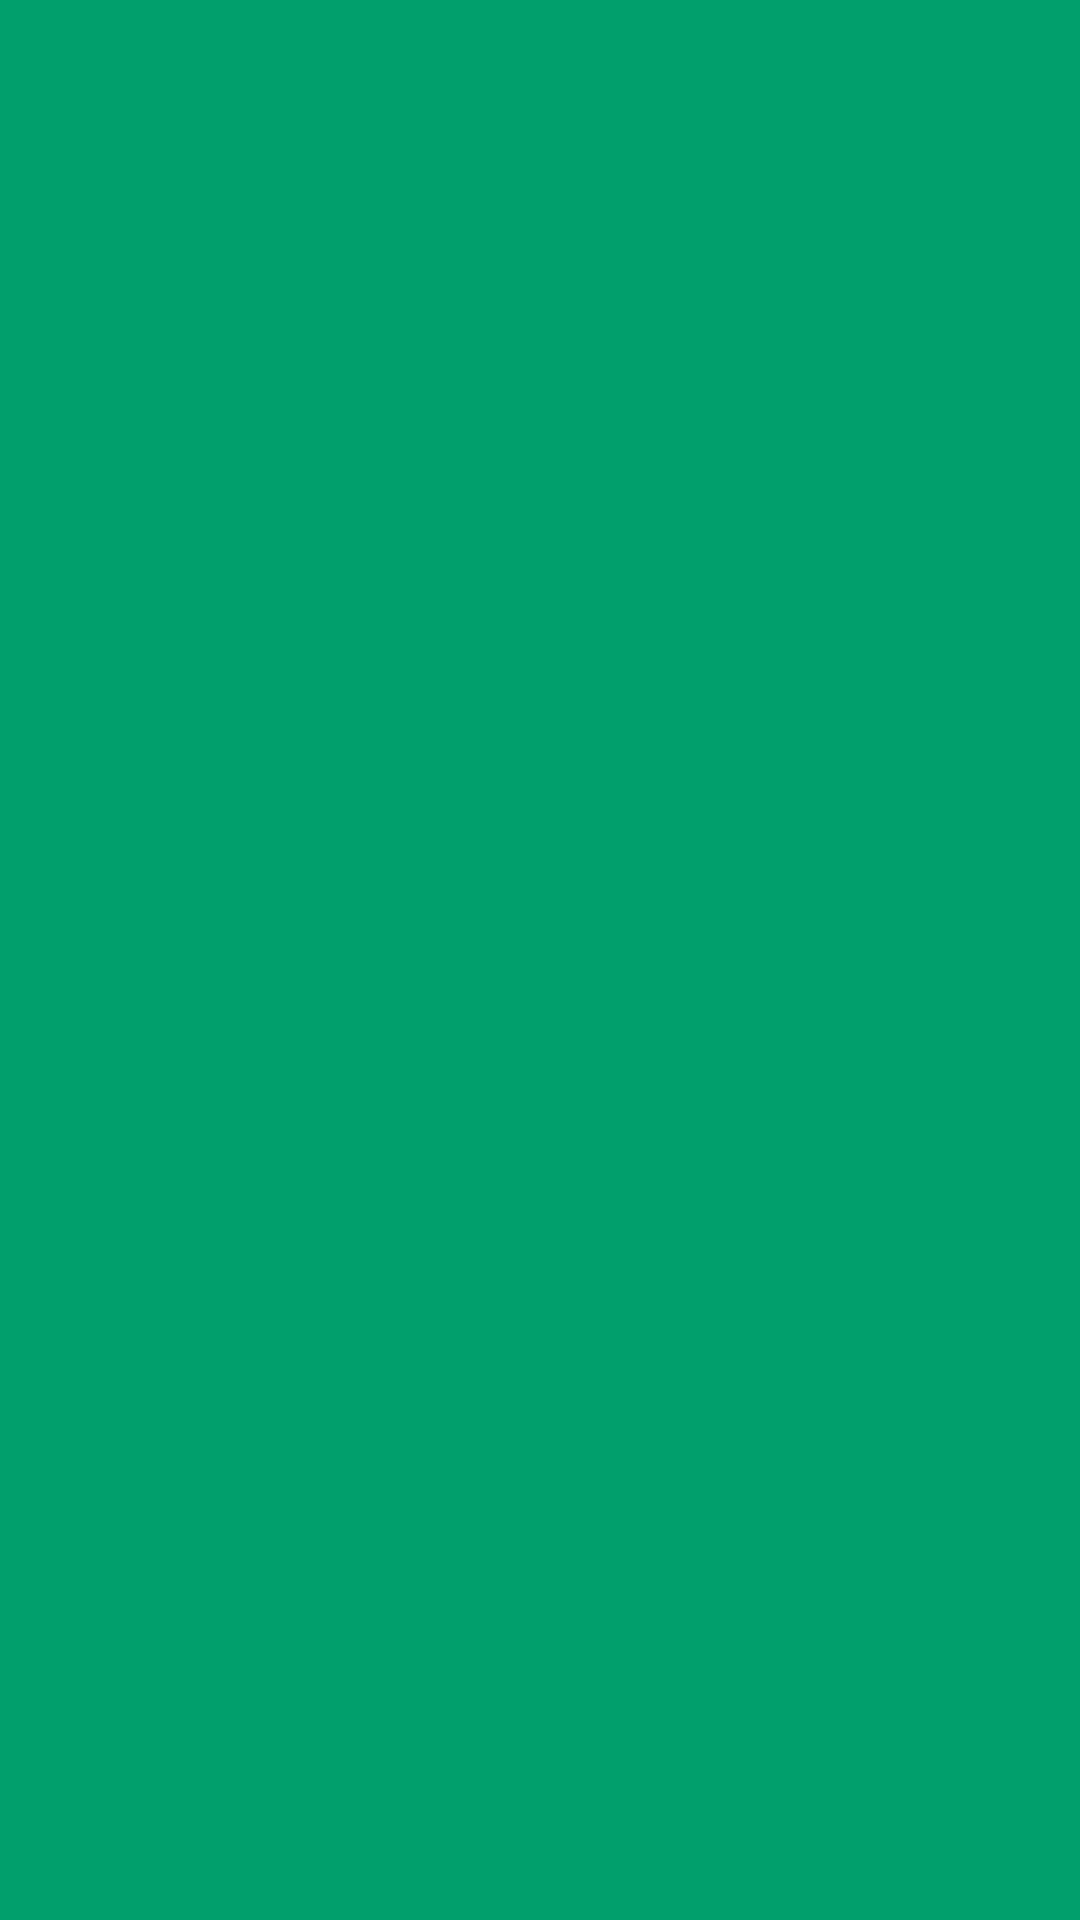 1080x1920 Green NCS Solid Color Background